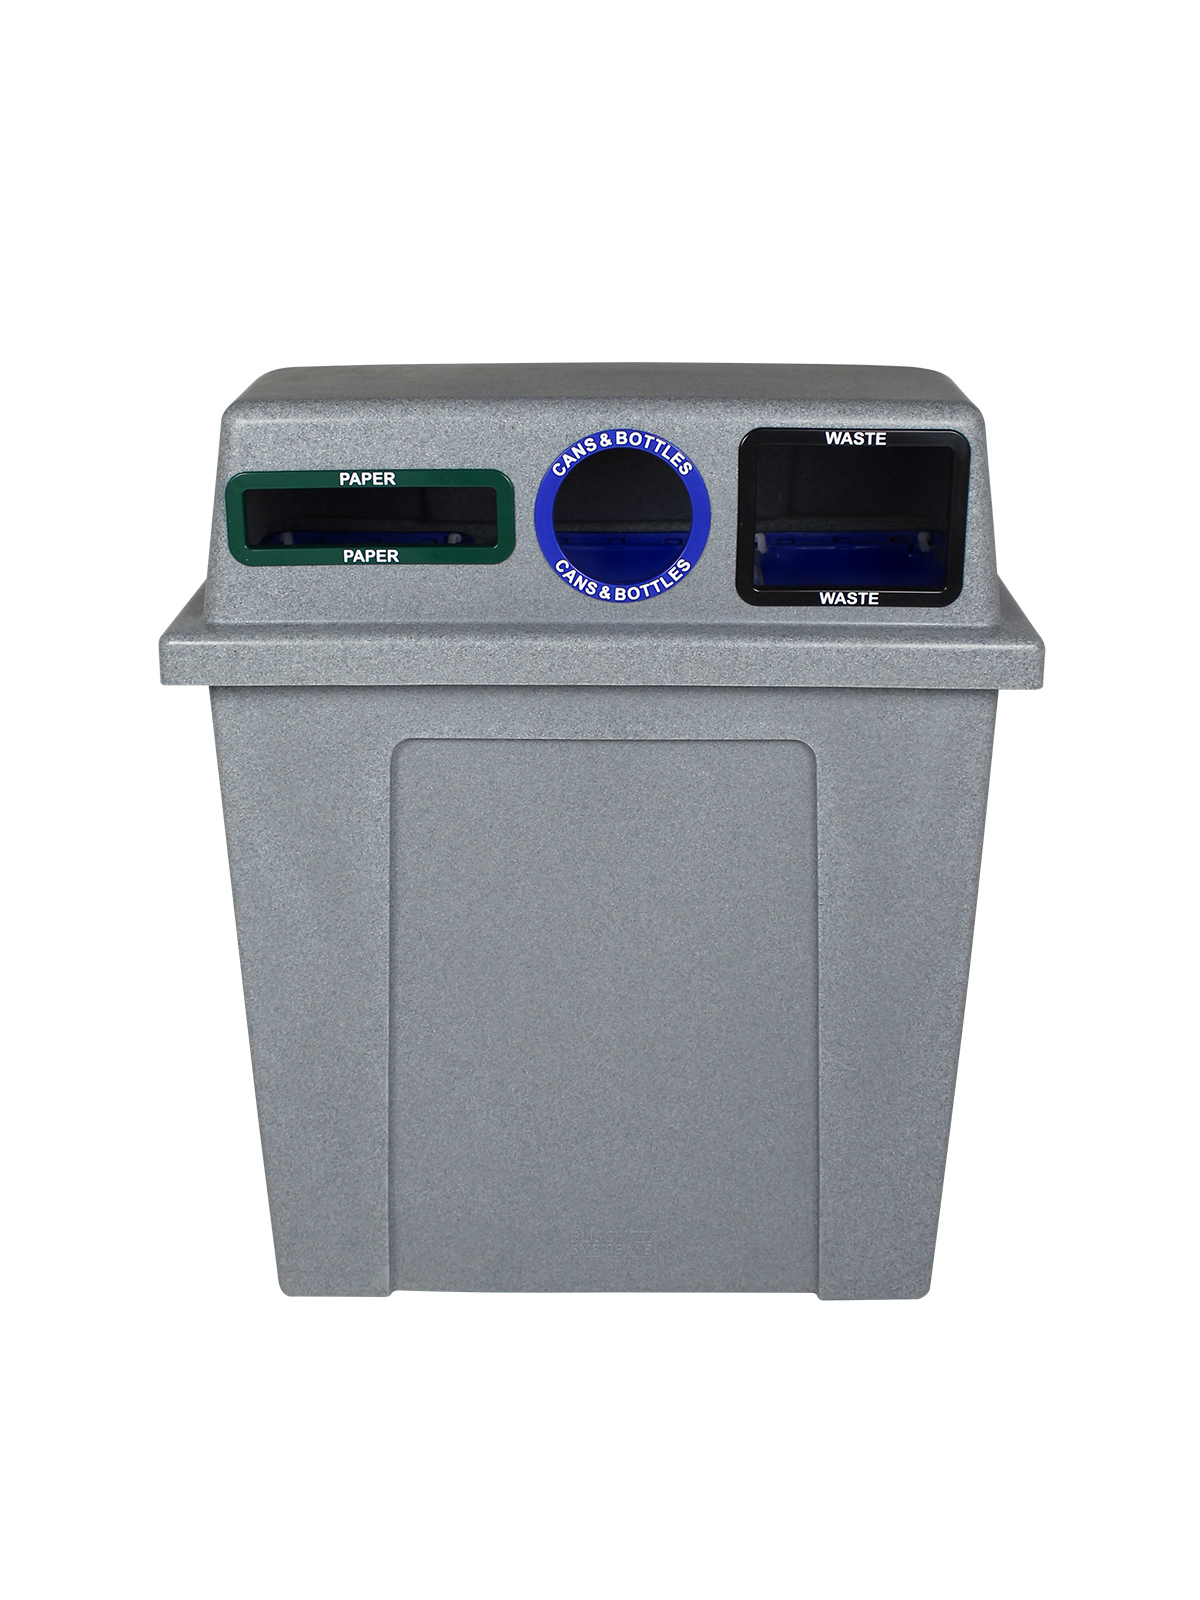 SUPER SORTER - Triple - Hd - Paper-Cans & Bottles-Waste - Slot-Circle-Full - Greystone